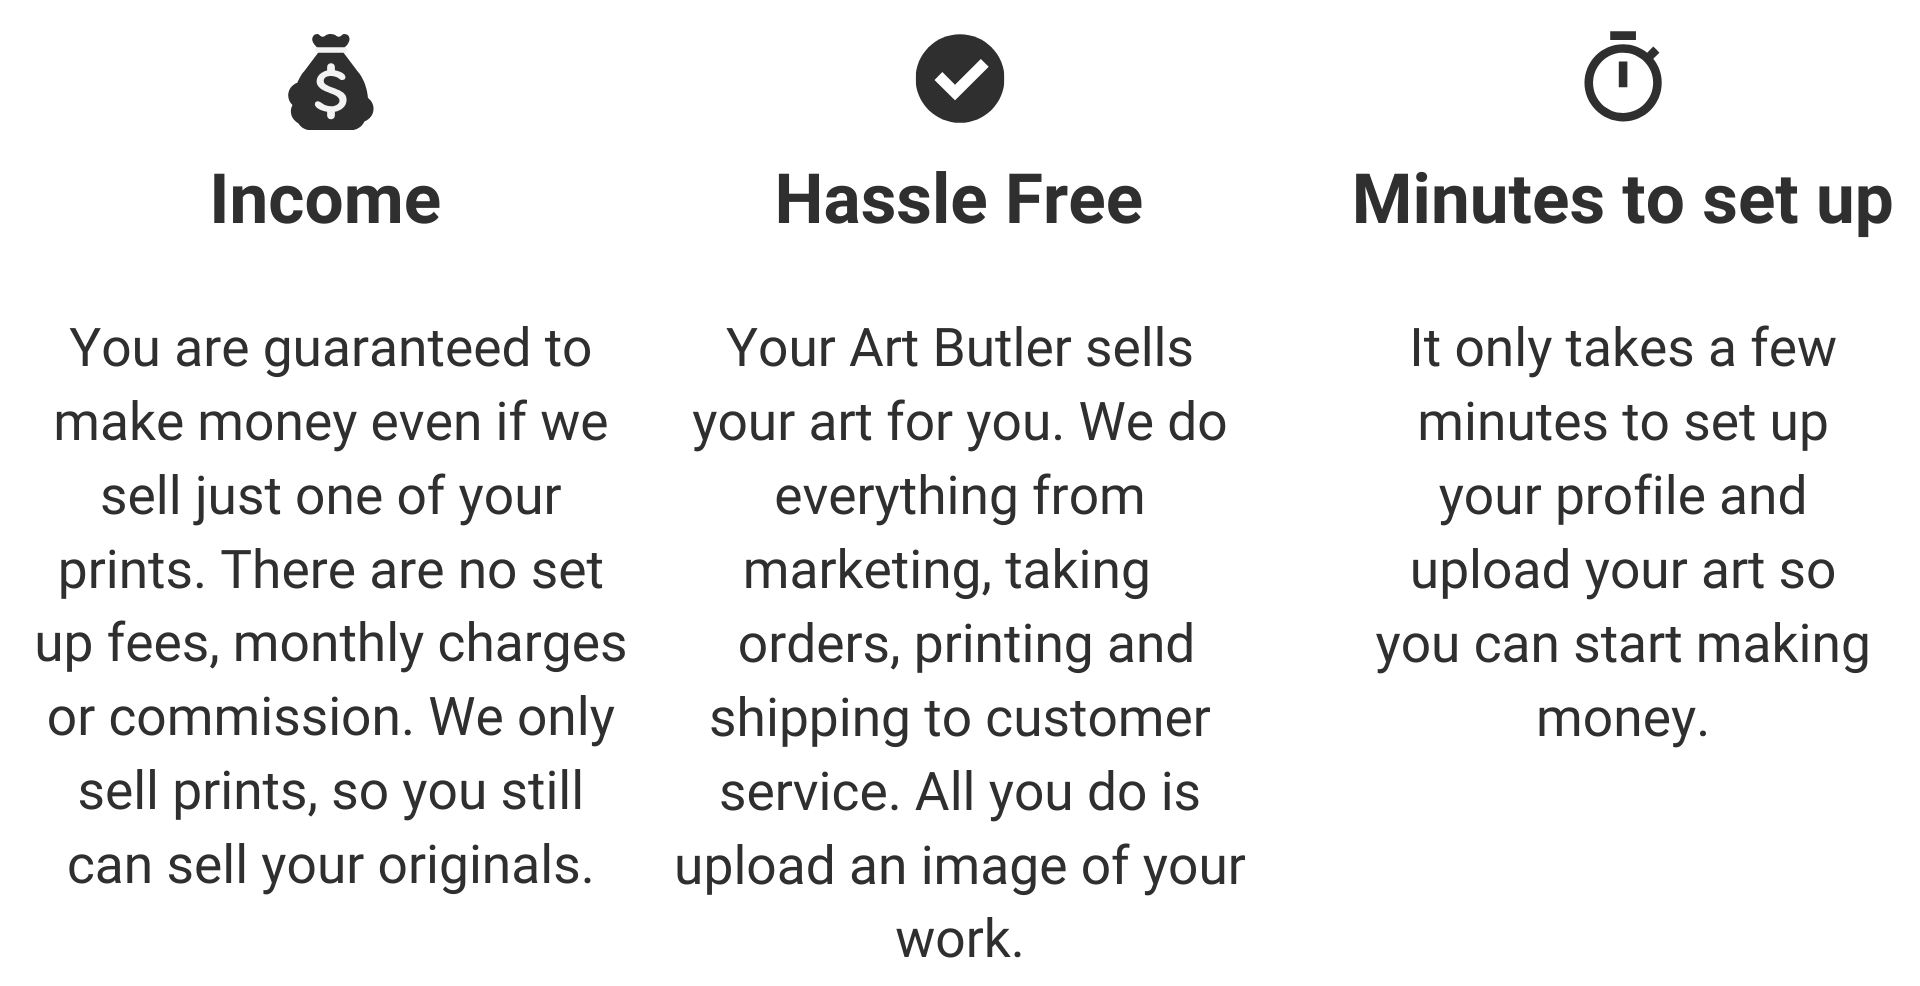 Income	Hassle Free	In Minutes  You are guaranteed to make money even if we sell just one of your prints. There are no set up fees, monthly charges or commission. We only sell prints, so you still can sell your originals.	Your Art Butler sells your art for you. We do everything from marketing, taking orders, printing and shipping to customer service. All you do is upload an image of your work.	It only takes a few minutes to set up your profile and upload your art so you can start making money.